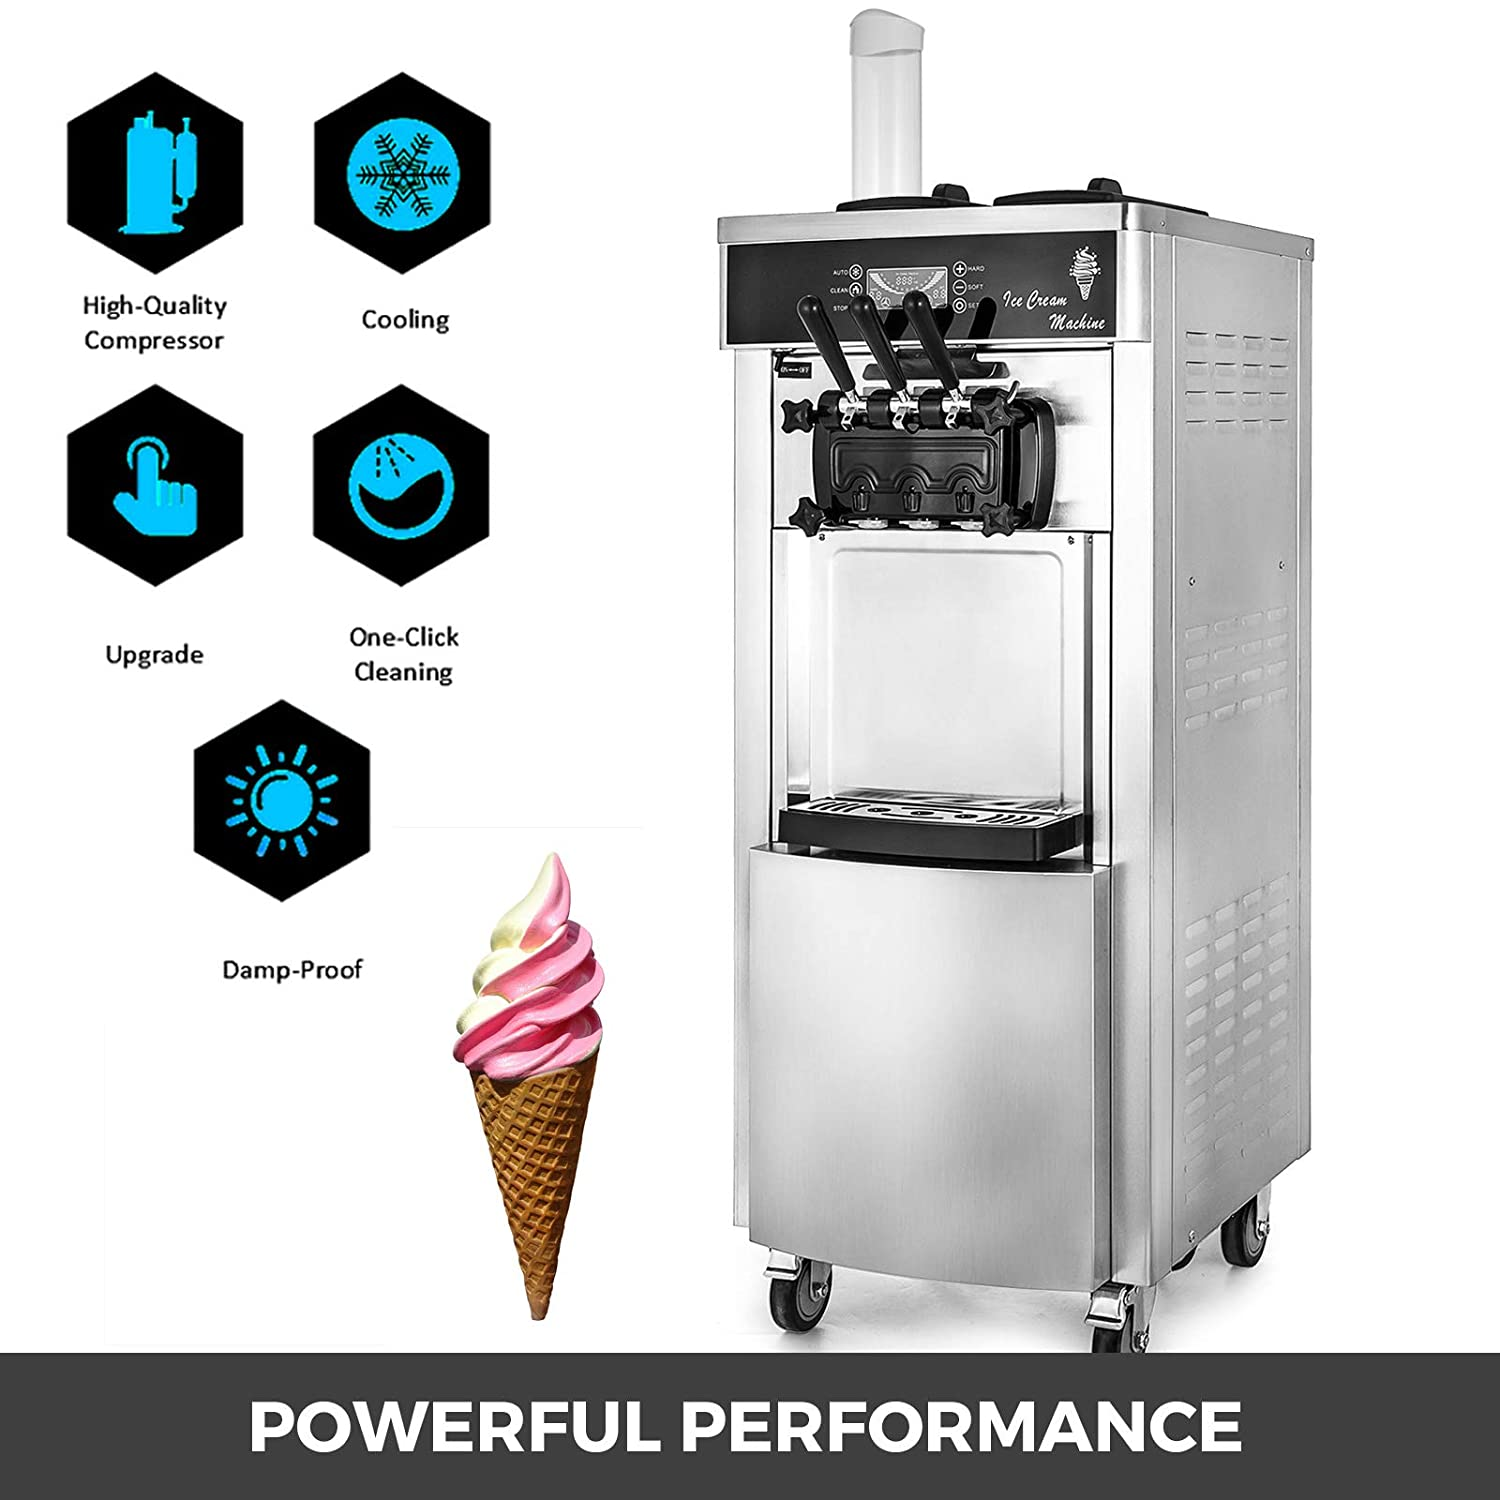 Home Appliances White Color Hexagram Star Modelling Caps Of Ice Cream Machine Spare Part Accessories Wide Varieties